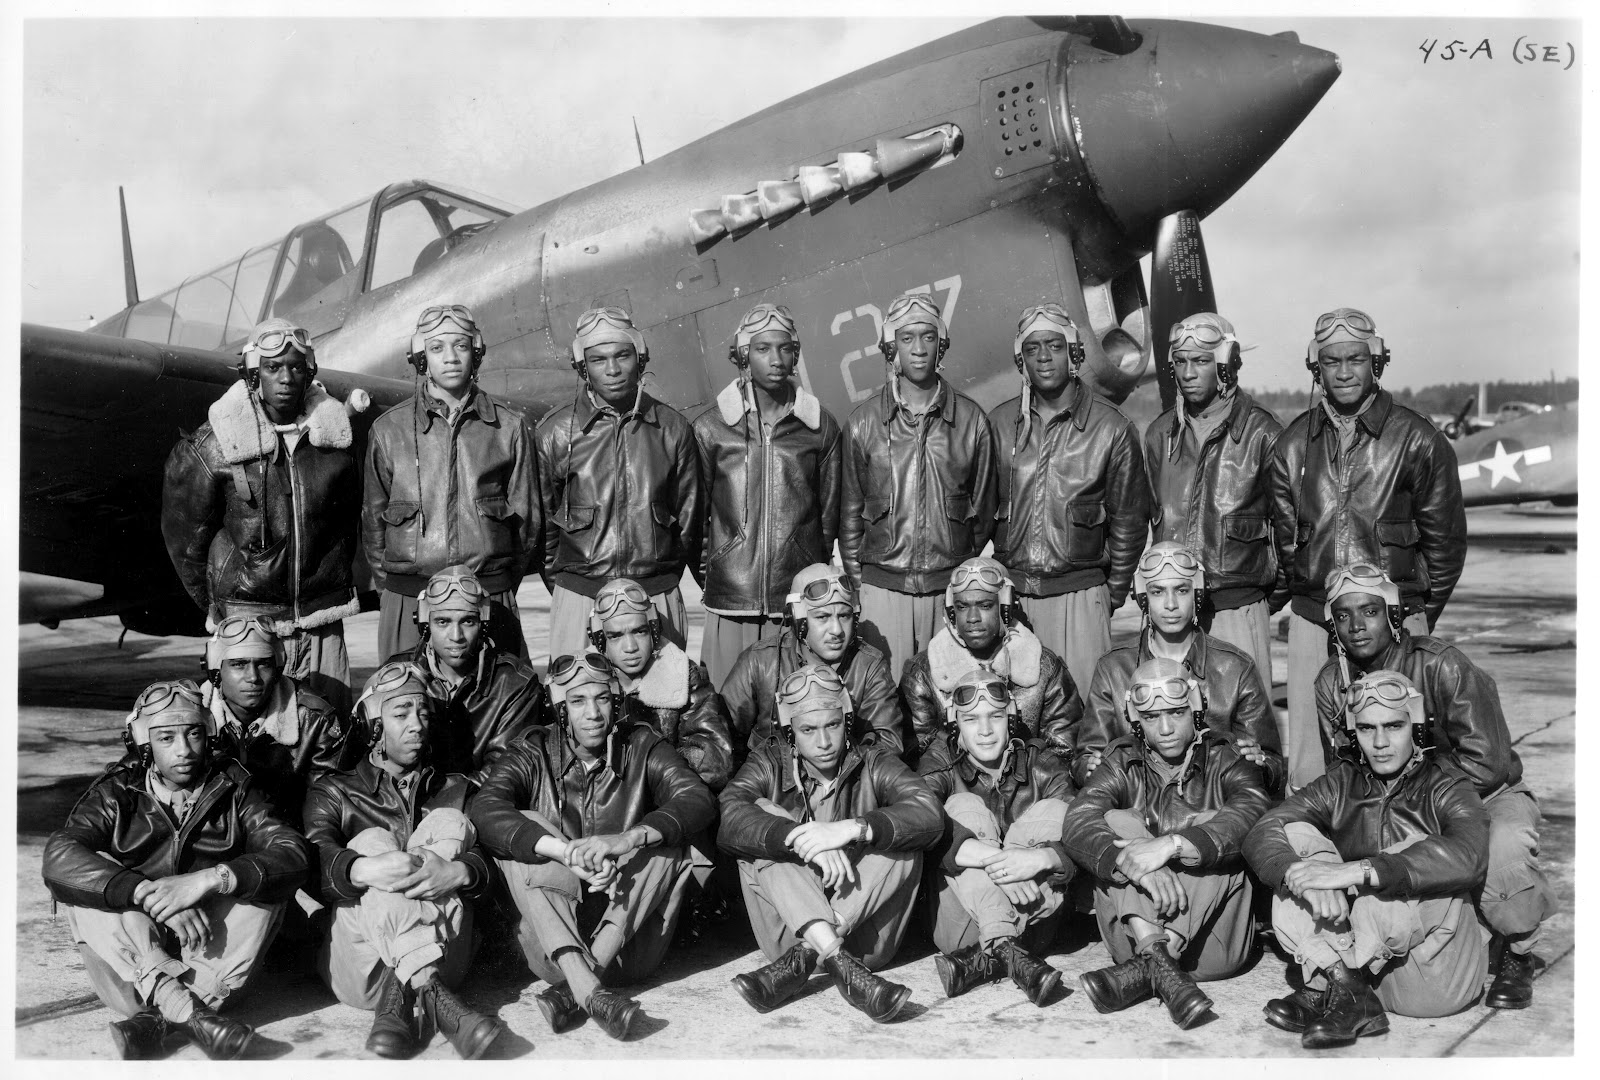 a history of the tuskegee airmen in the united states air force The history of the united states is steeped in contribution of the air force formerly army air corps, in preserving and maintaining freedom the american airmen have been victorious in all.